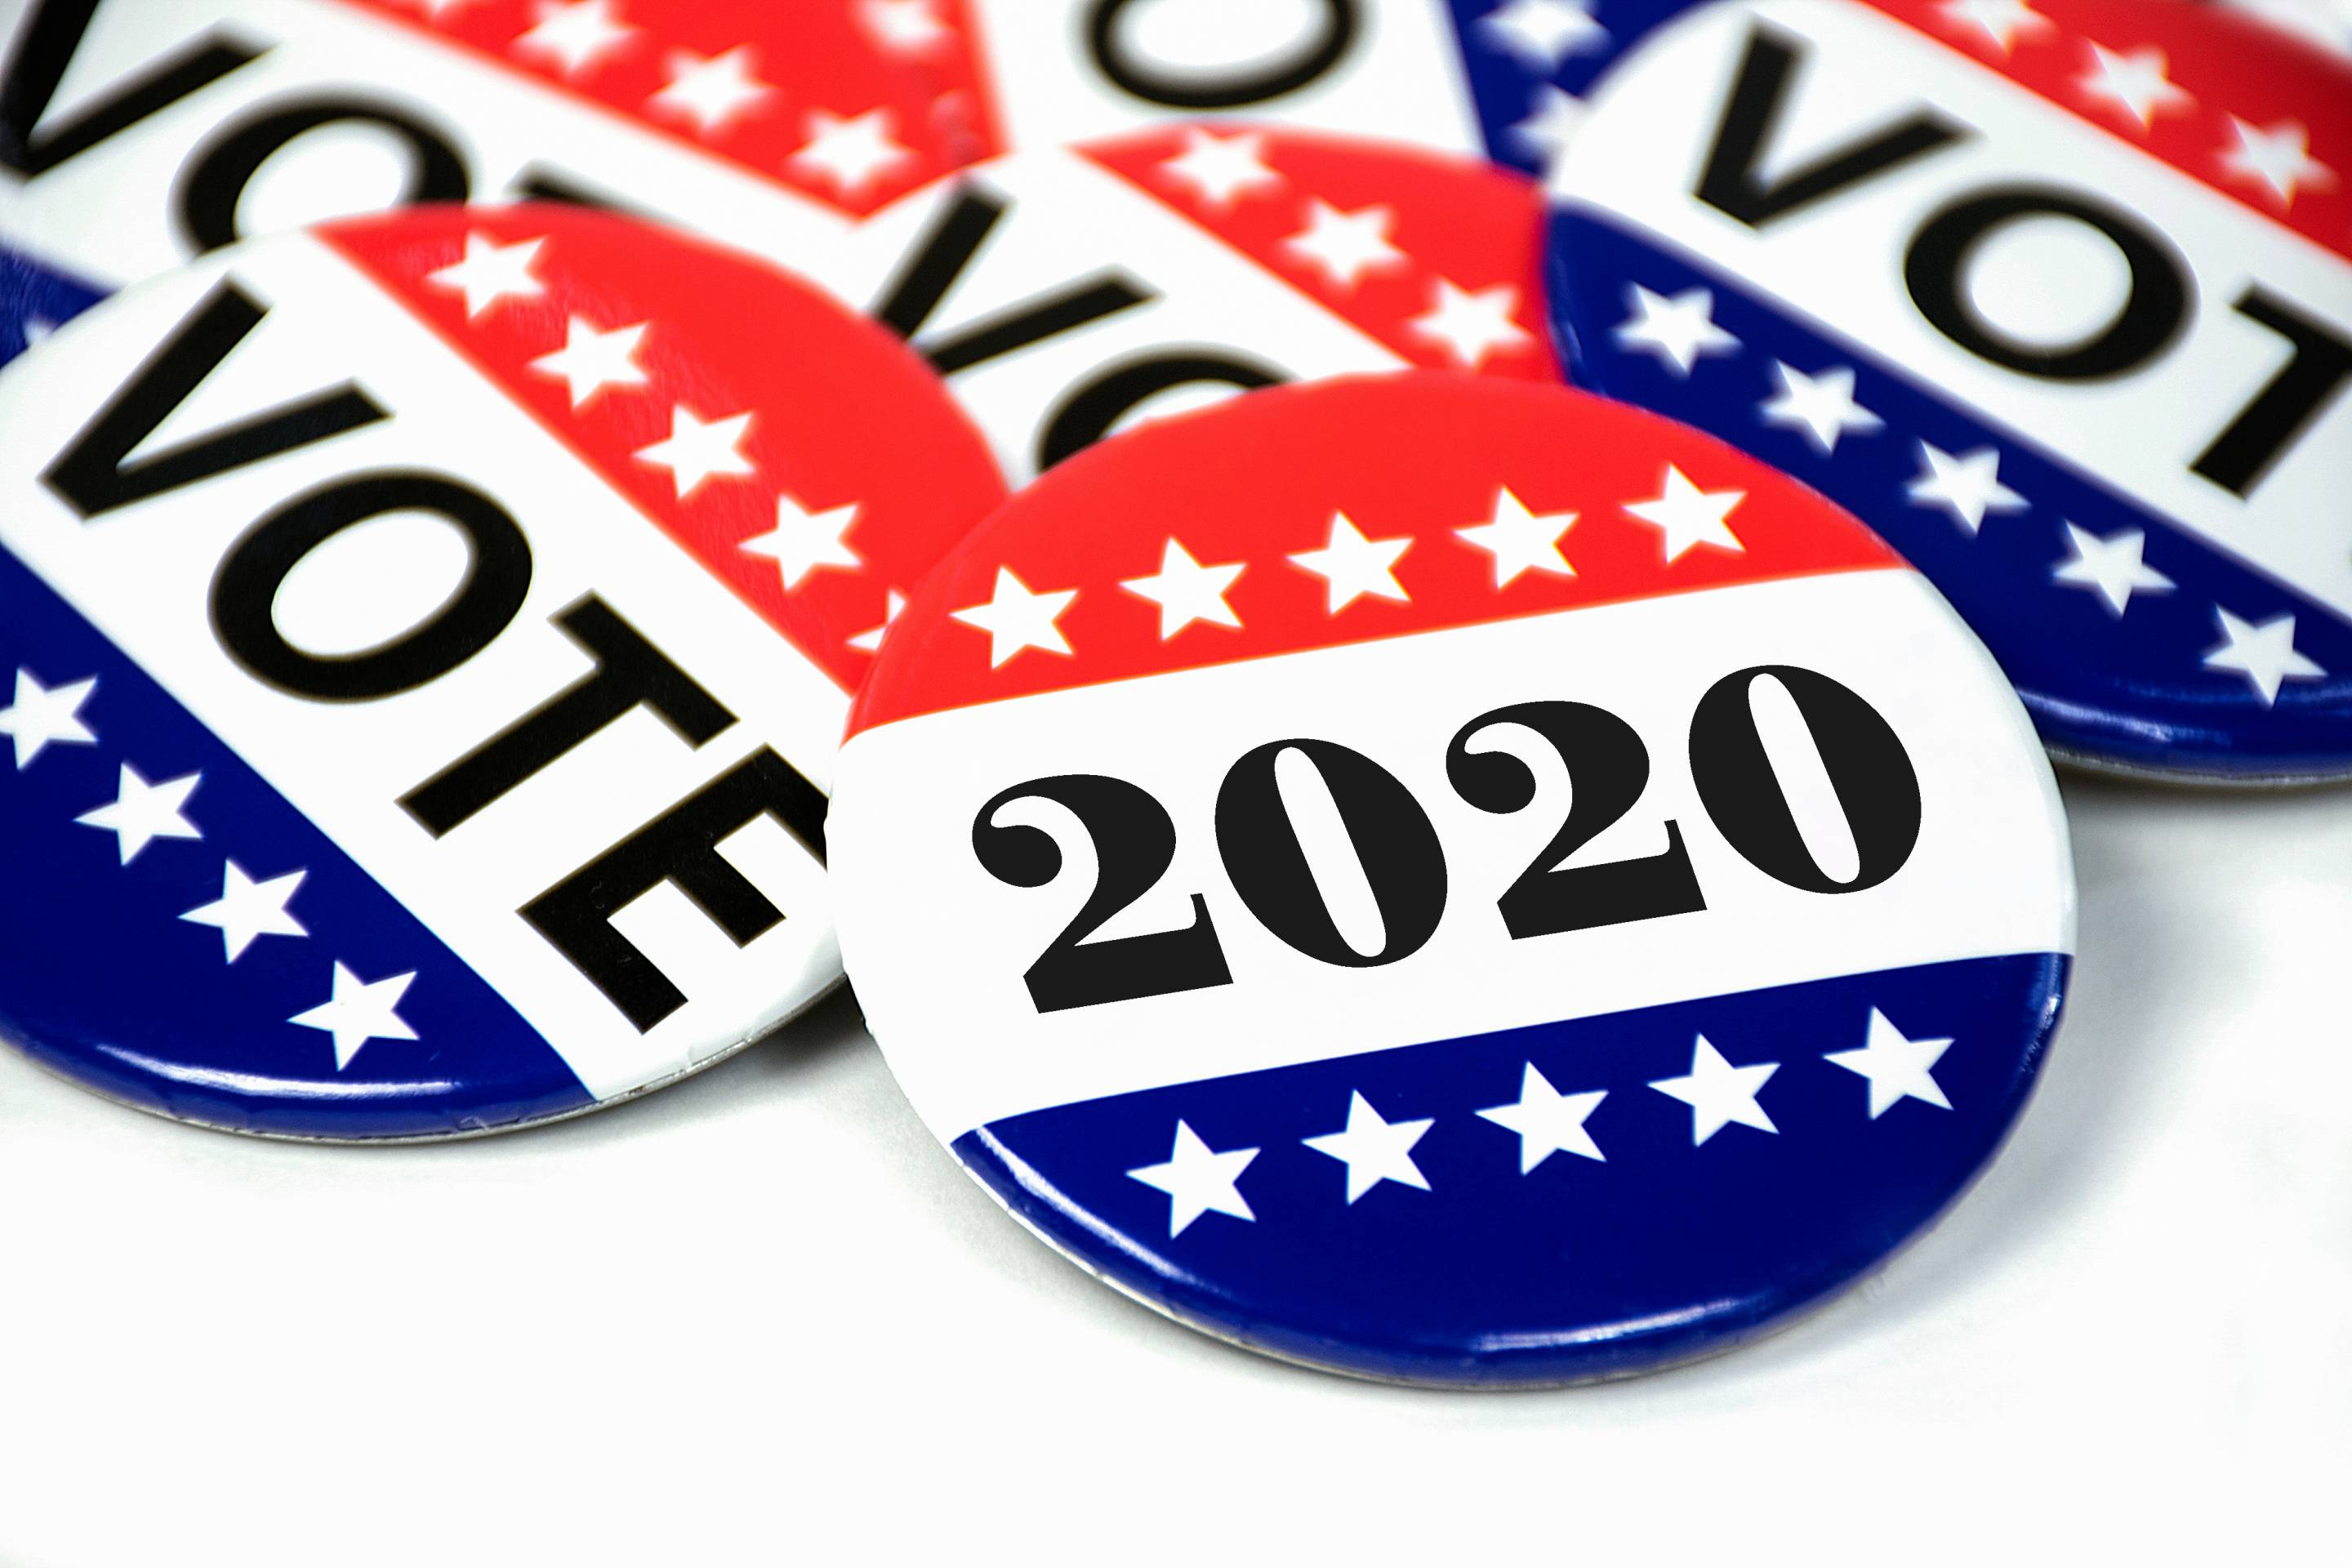 Top 100 Hits 2020.2020 Election Meet The Republicans Likely To Challenge Trump Fortune